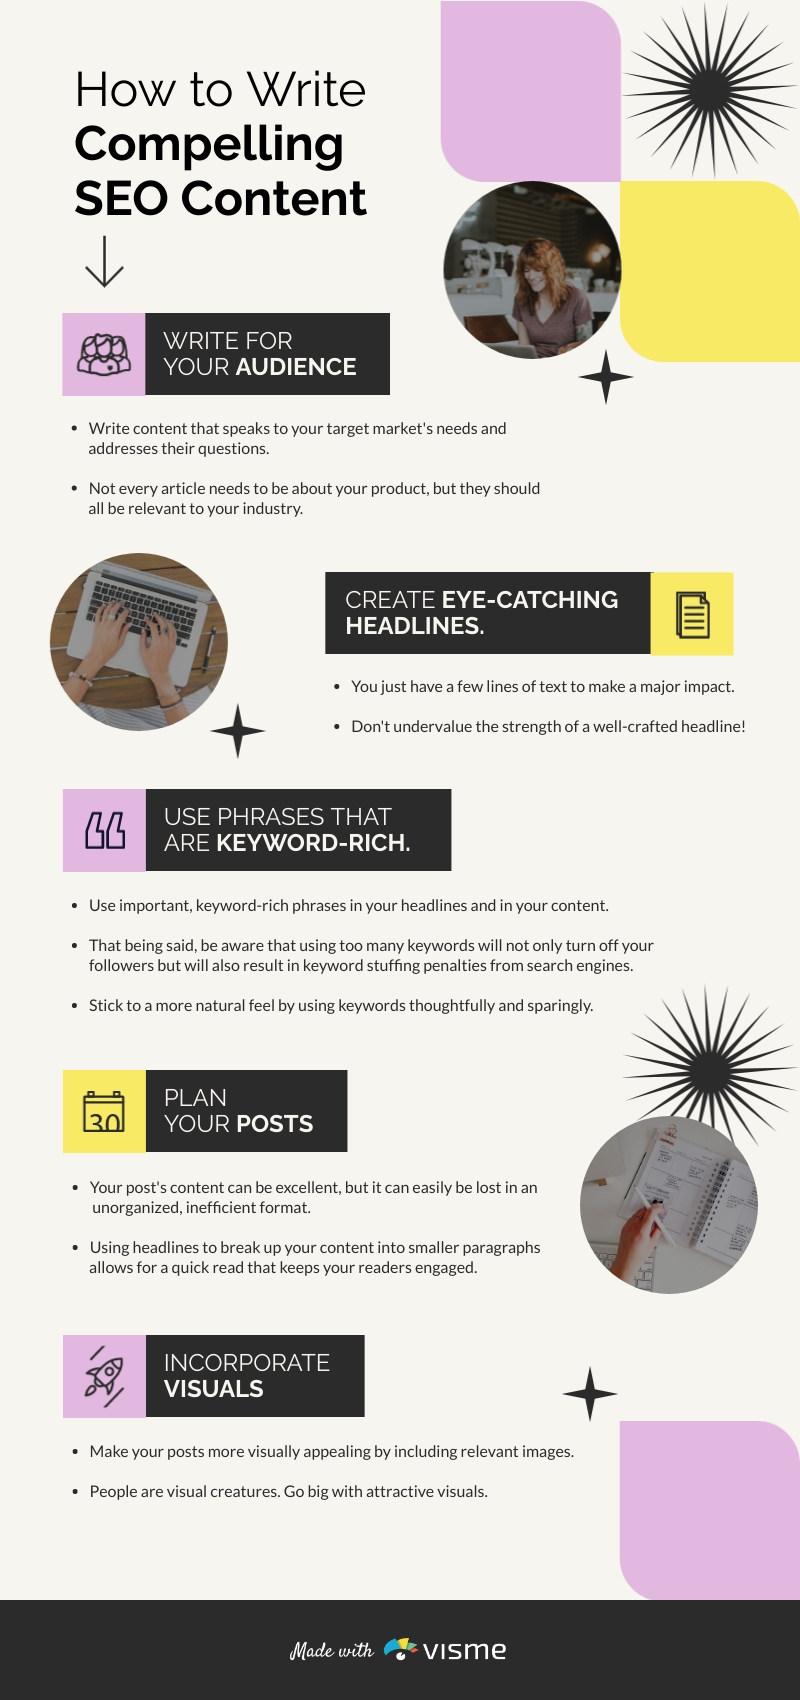 How to Write SEO Content - Infographic Template